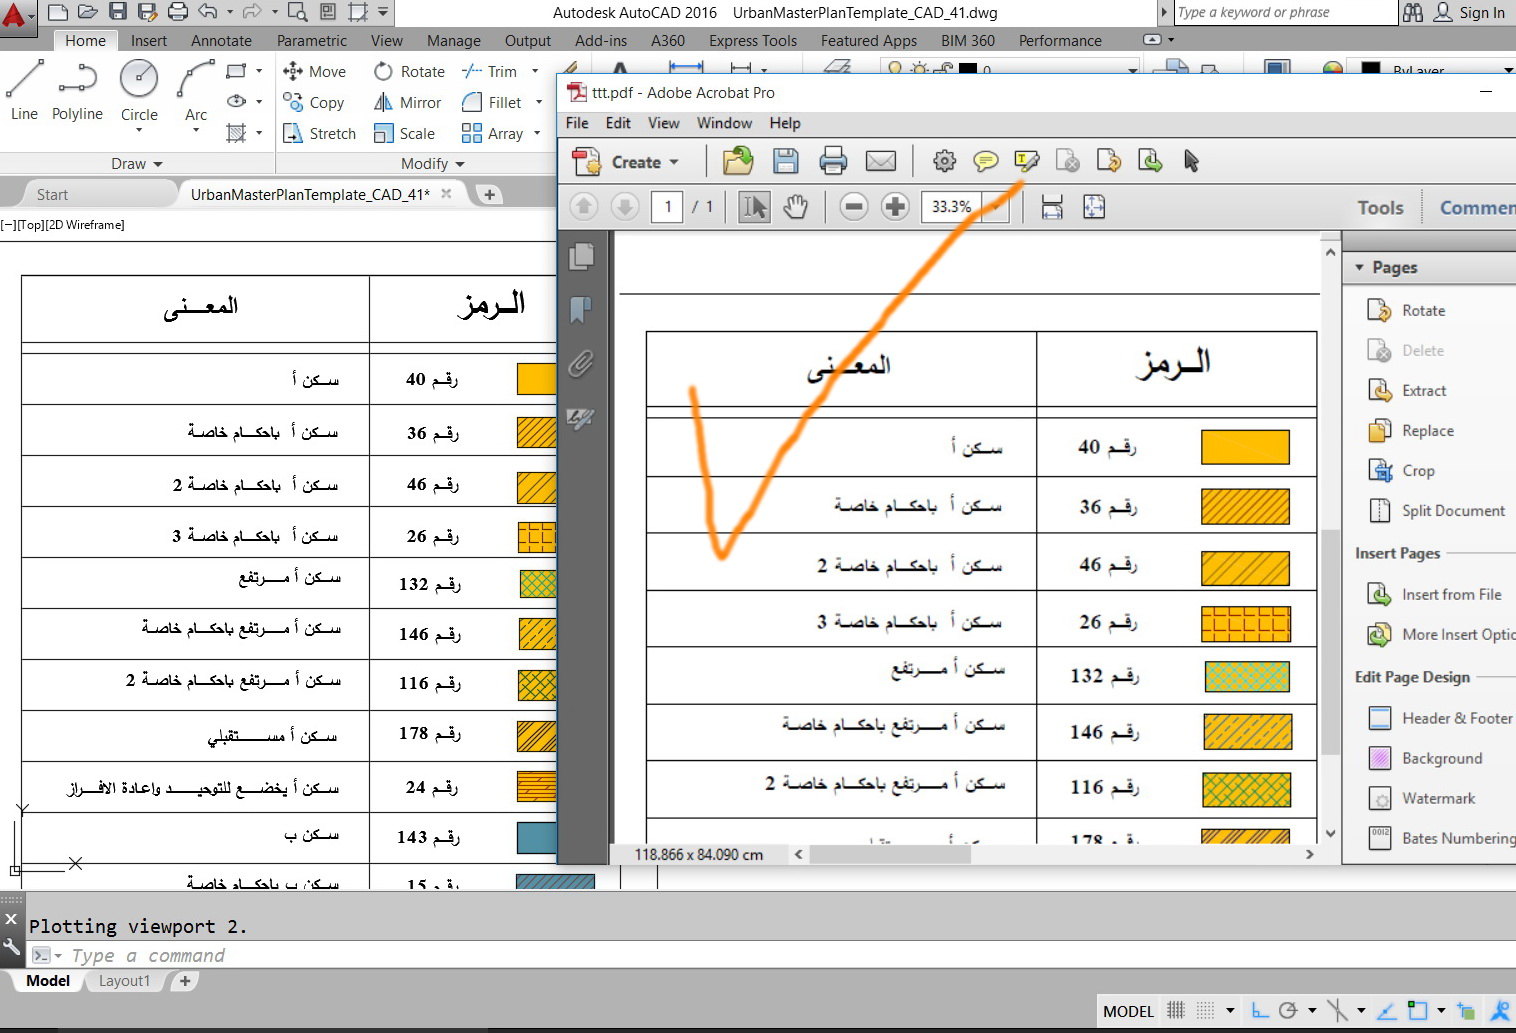 Arabic font in the AutoCAD,